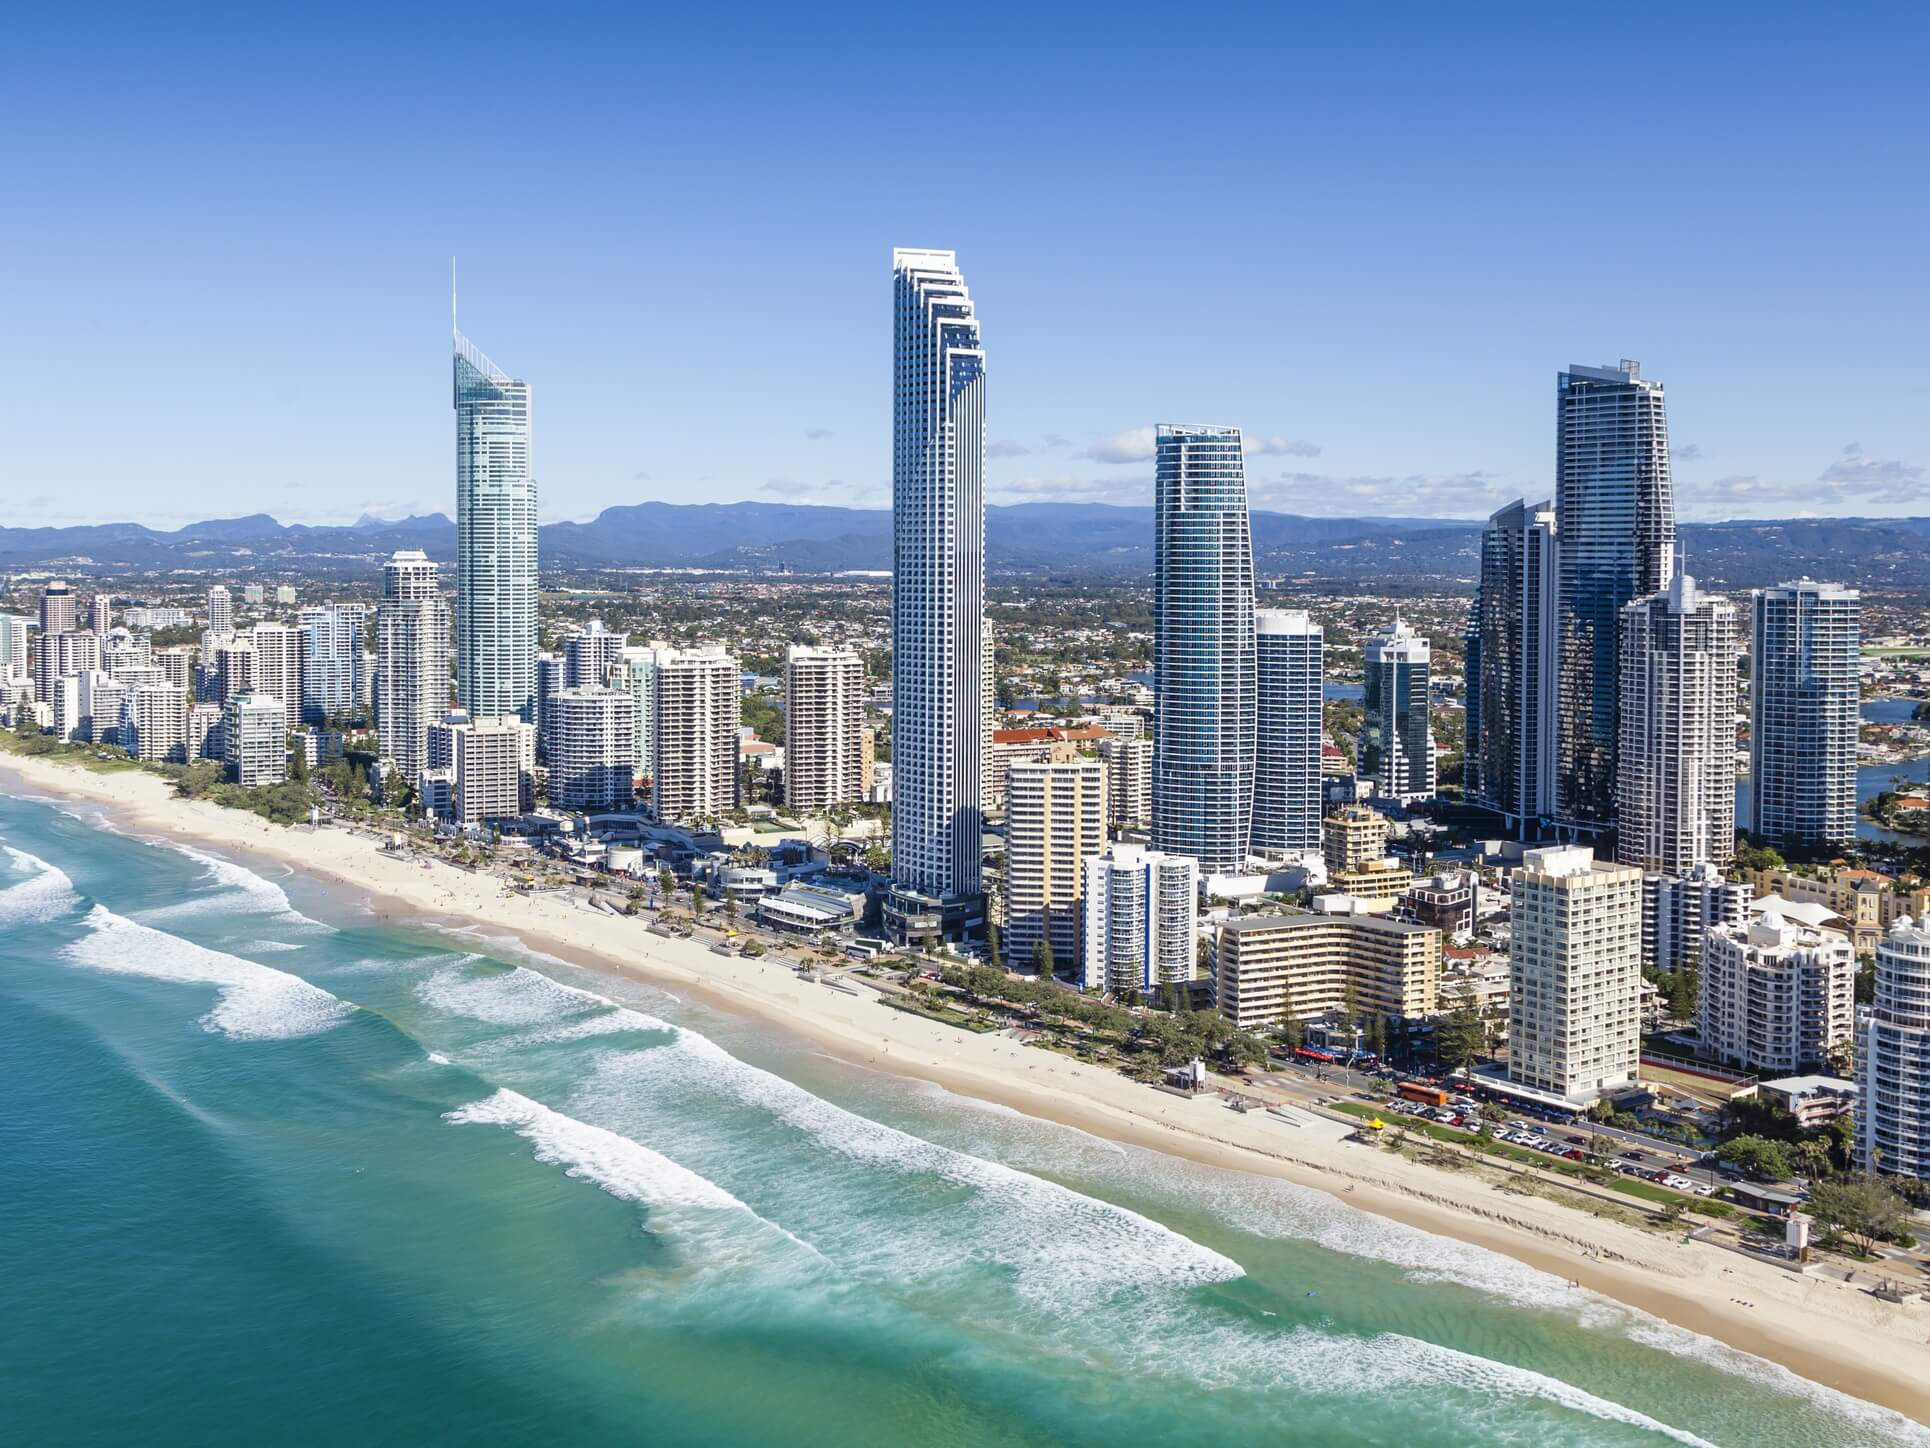 Tourism boom: Key things to consider when acquiring or building a hotel in Australia